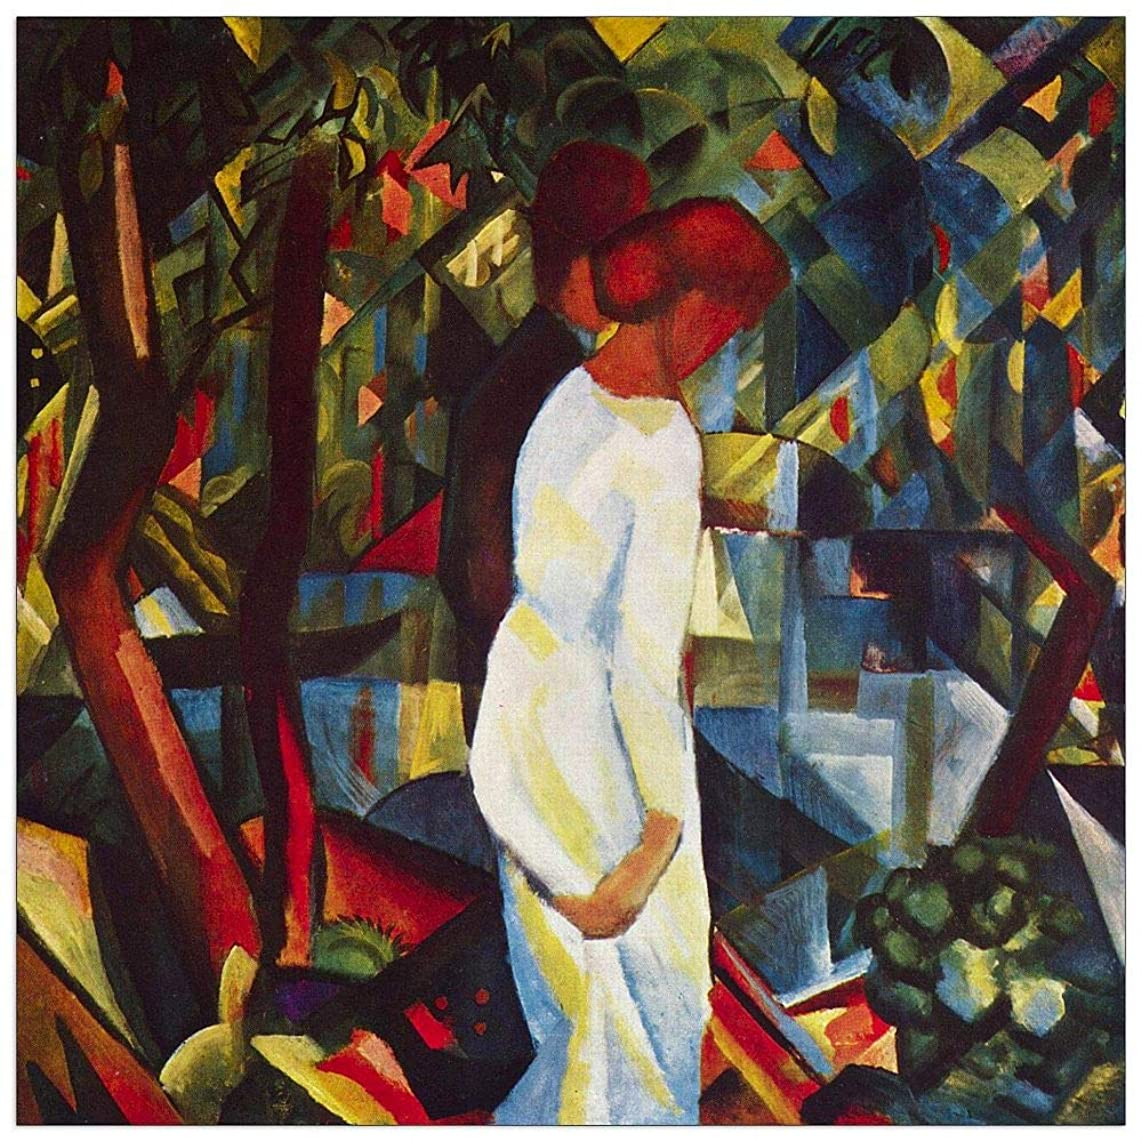 ArtPlaza TW91372 Macke August - Couple in The Forest Decorative Panel 15.5x15.5 Inch Multicolored